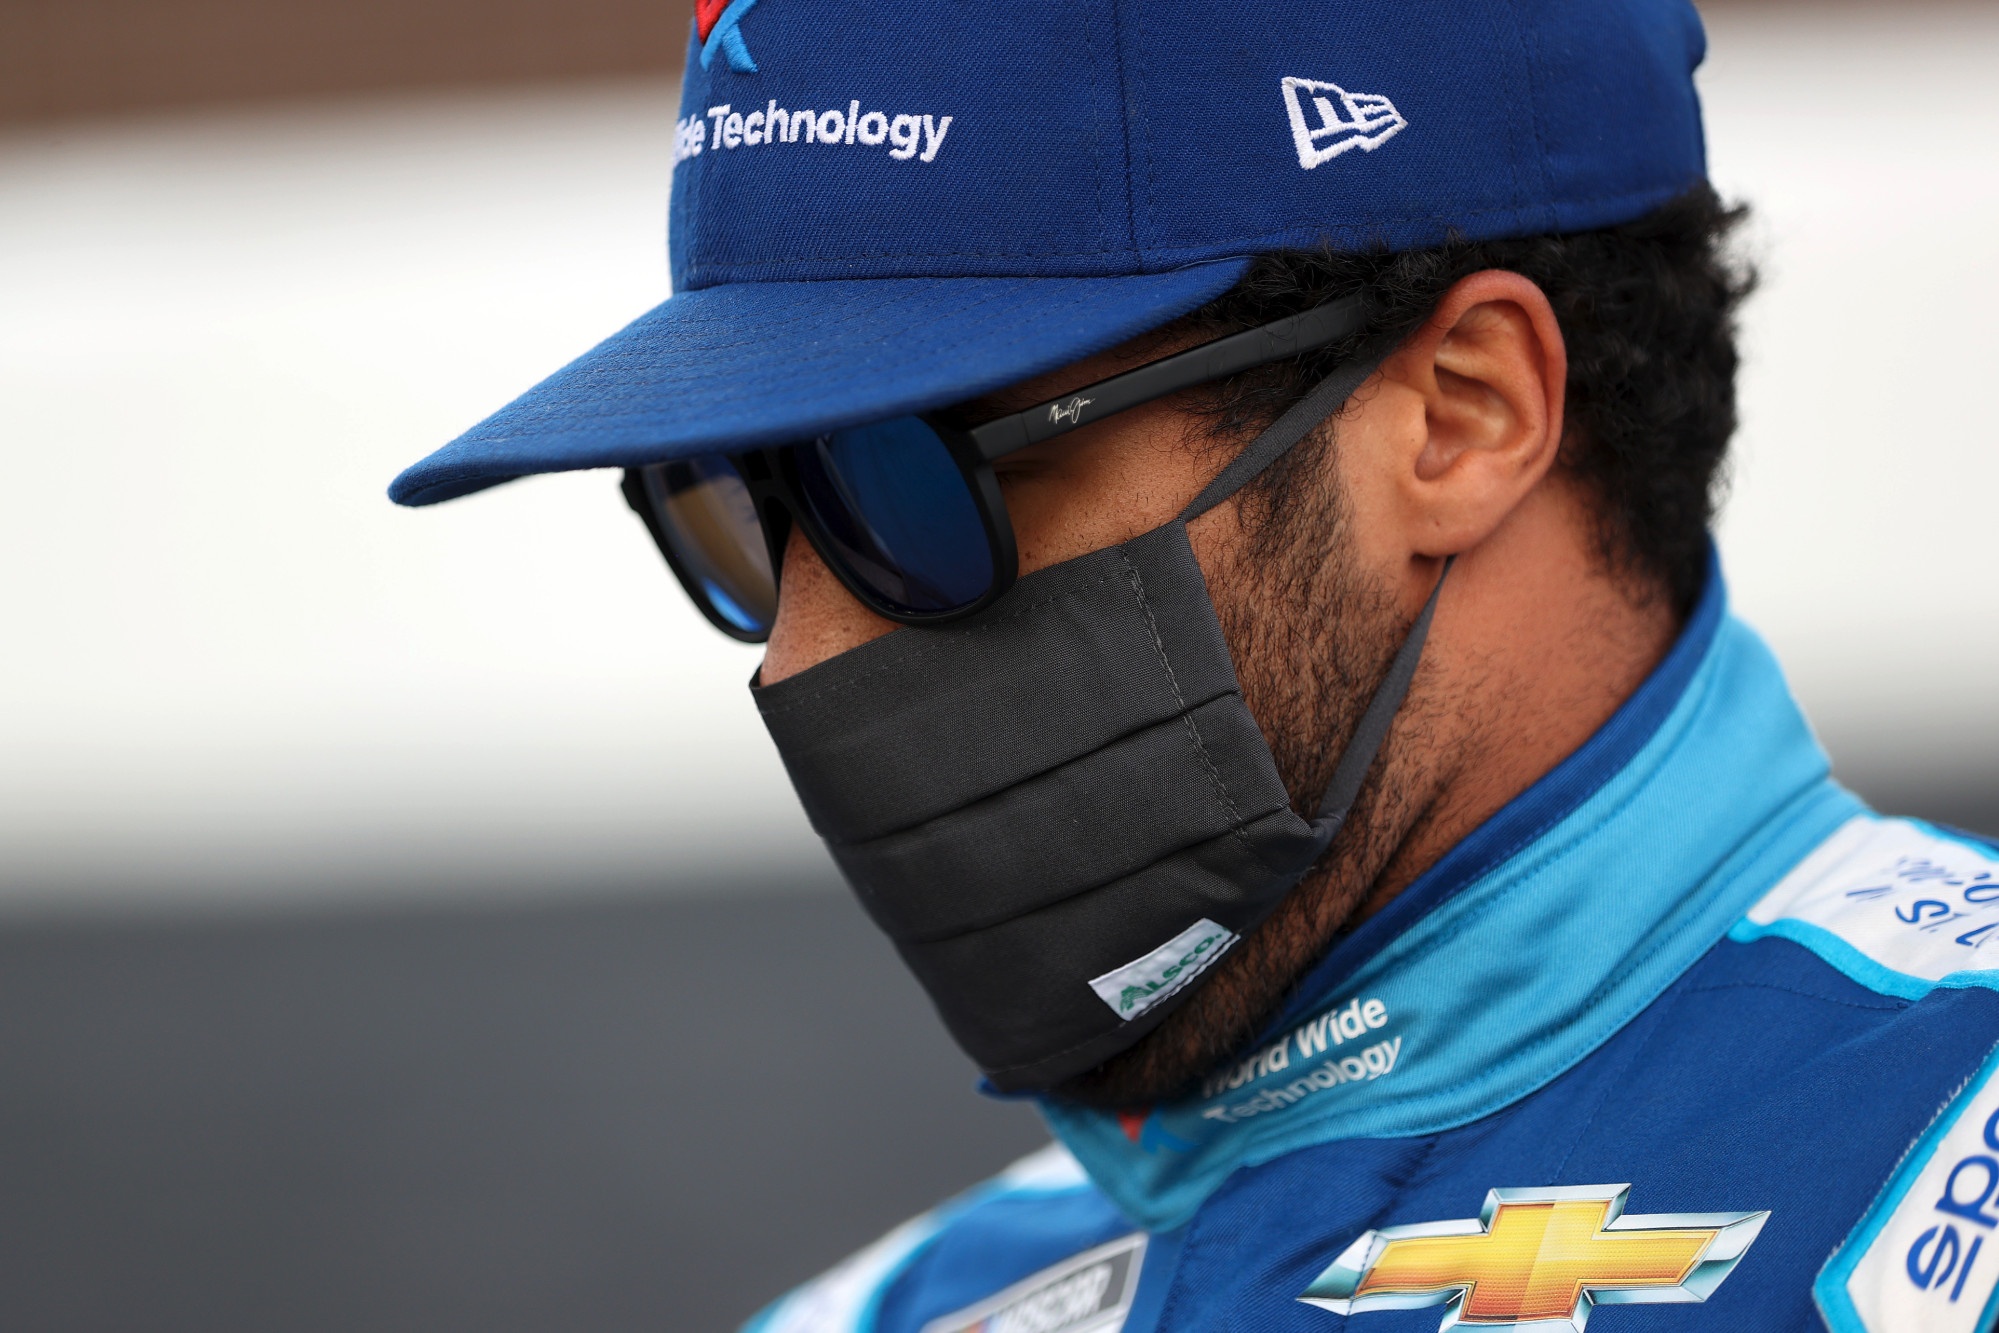 NASCAR driver Bubba Wallace says he is racially abused daily on social media